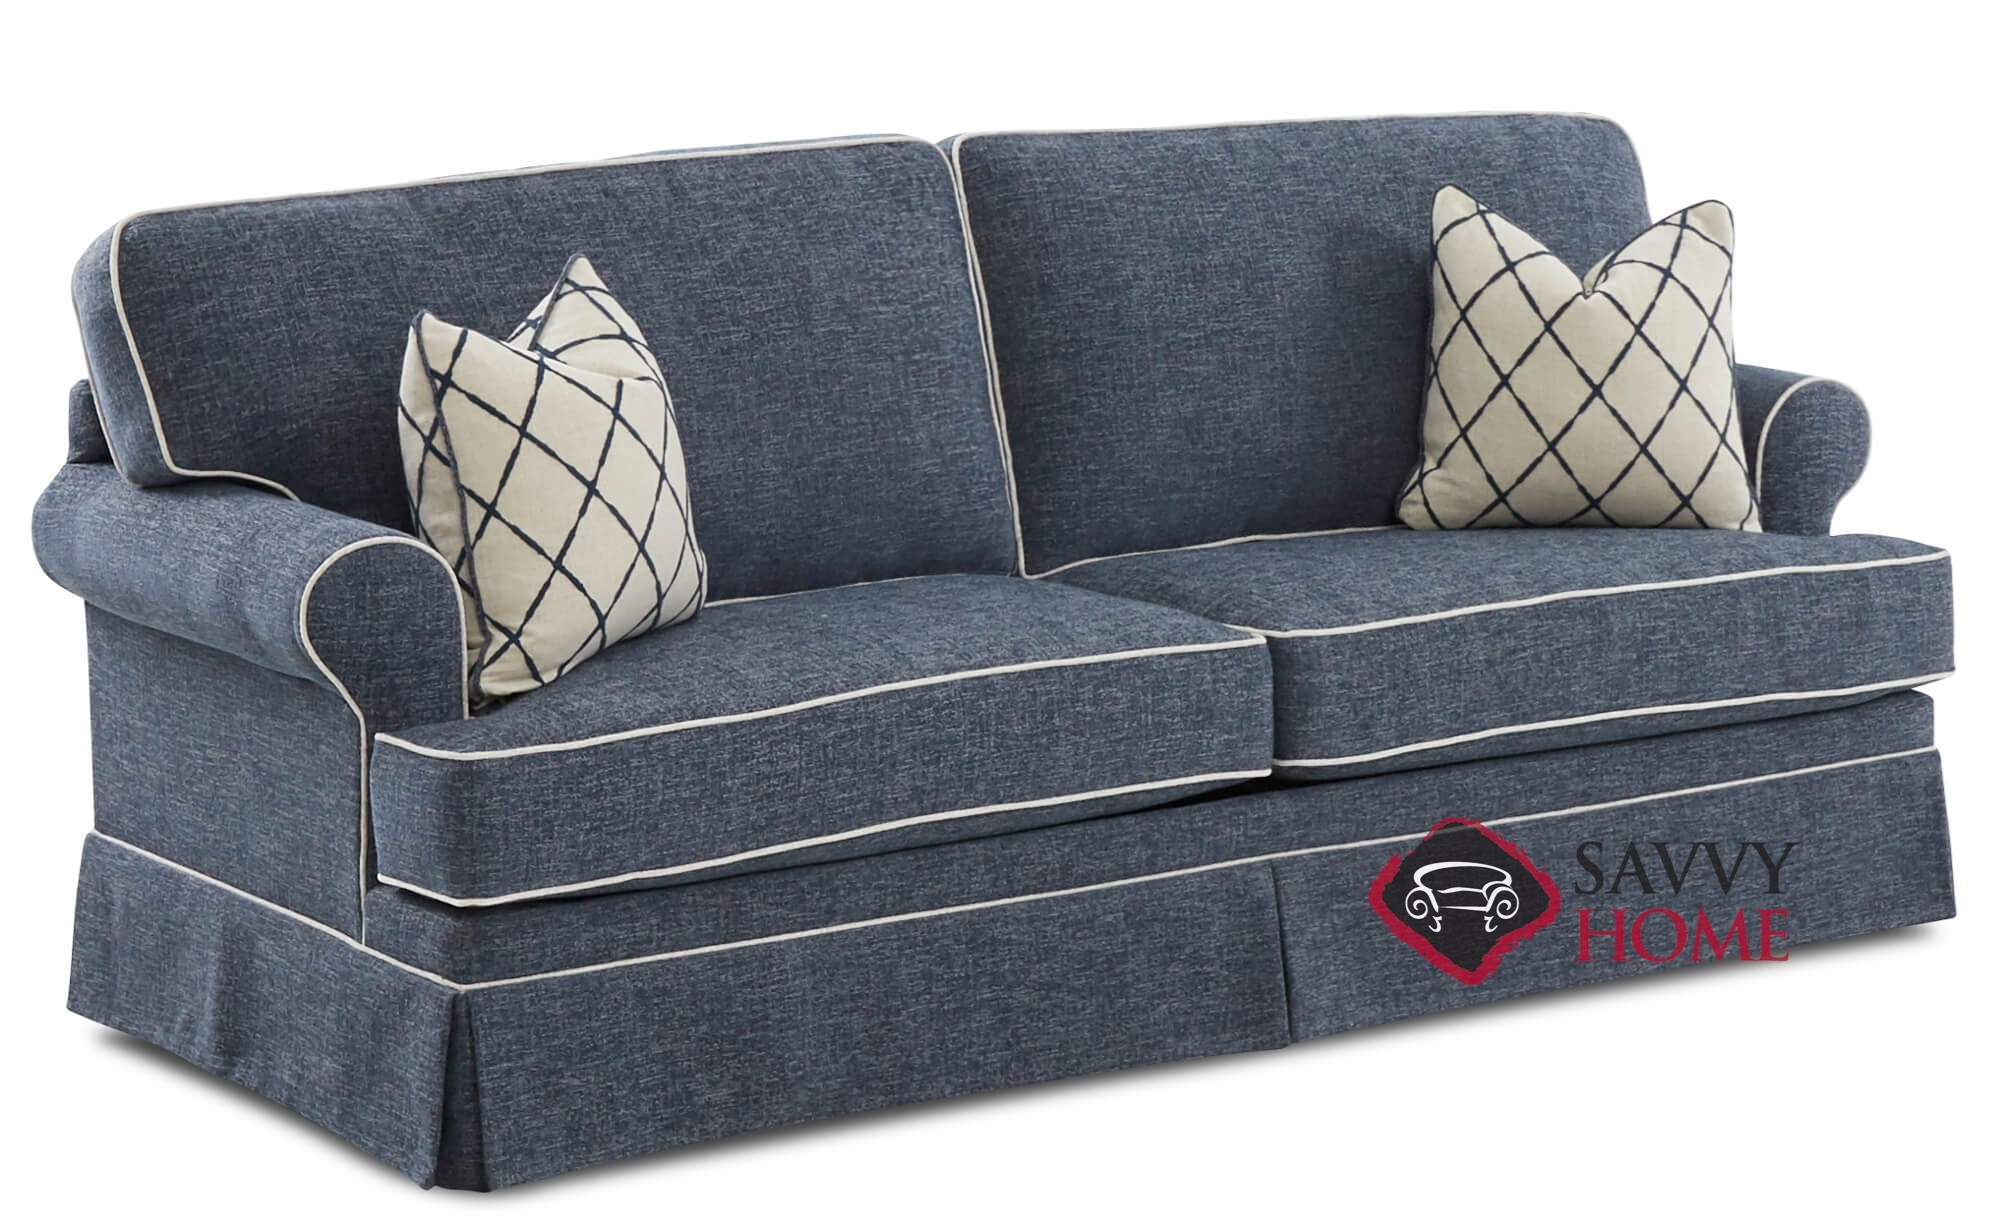 Cranston Fabric Sleeper Sofas Queen By